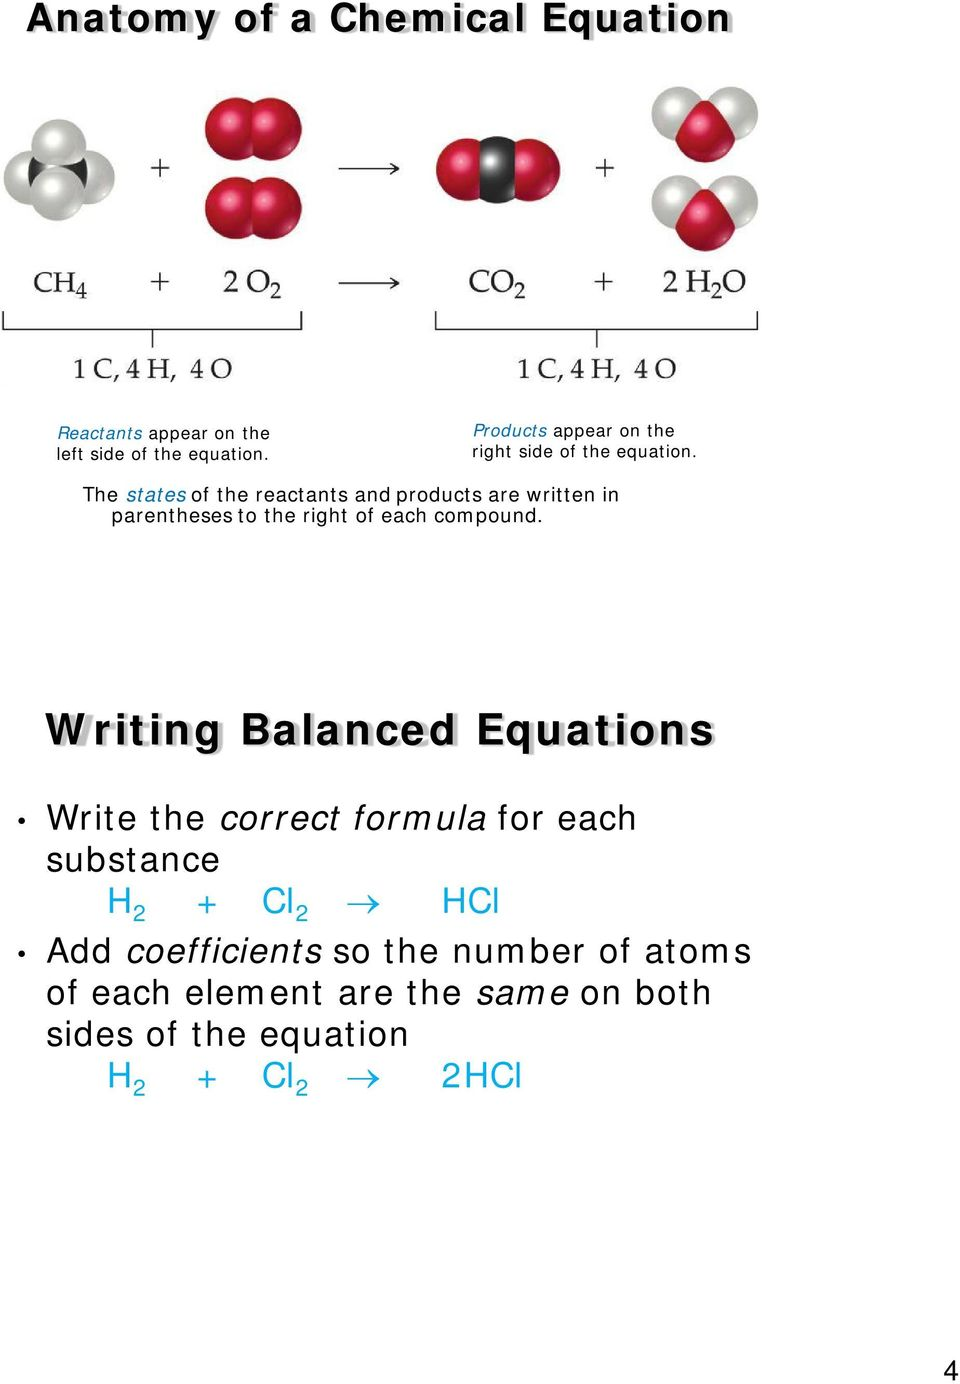 The states of the reactants and products are written in parentheses to the right of each compound.